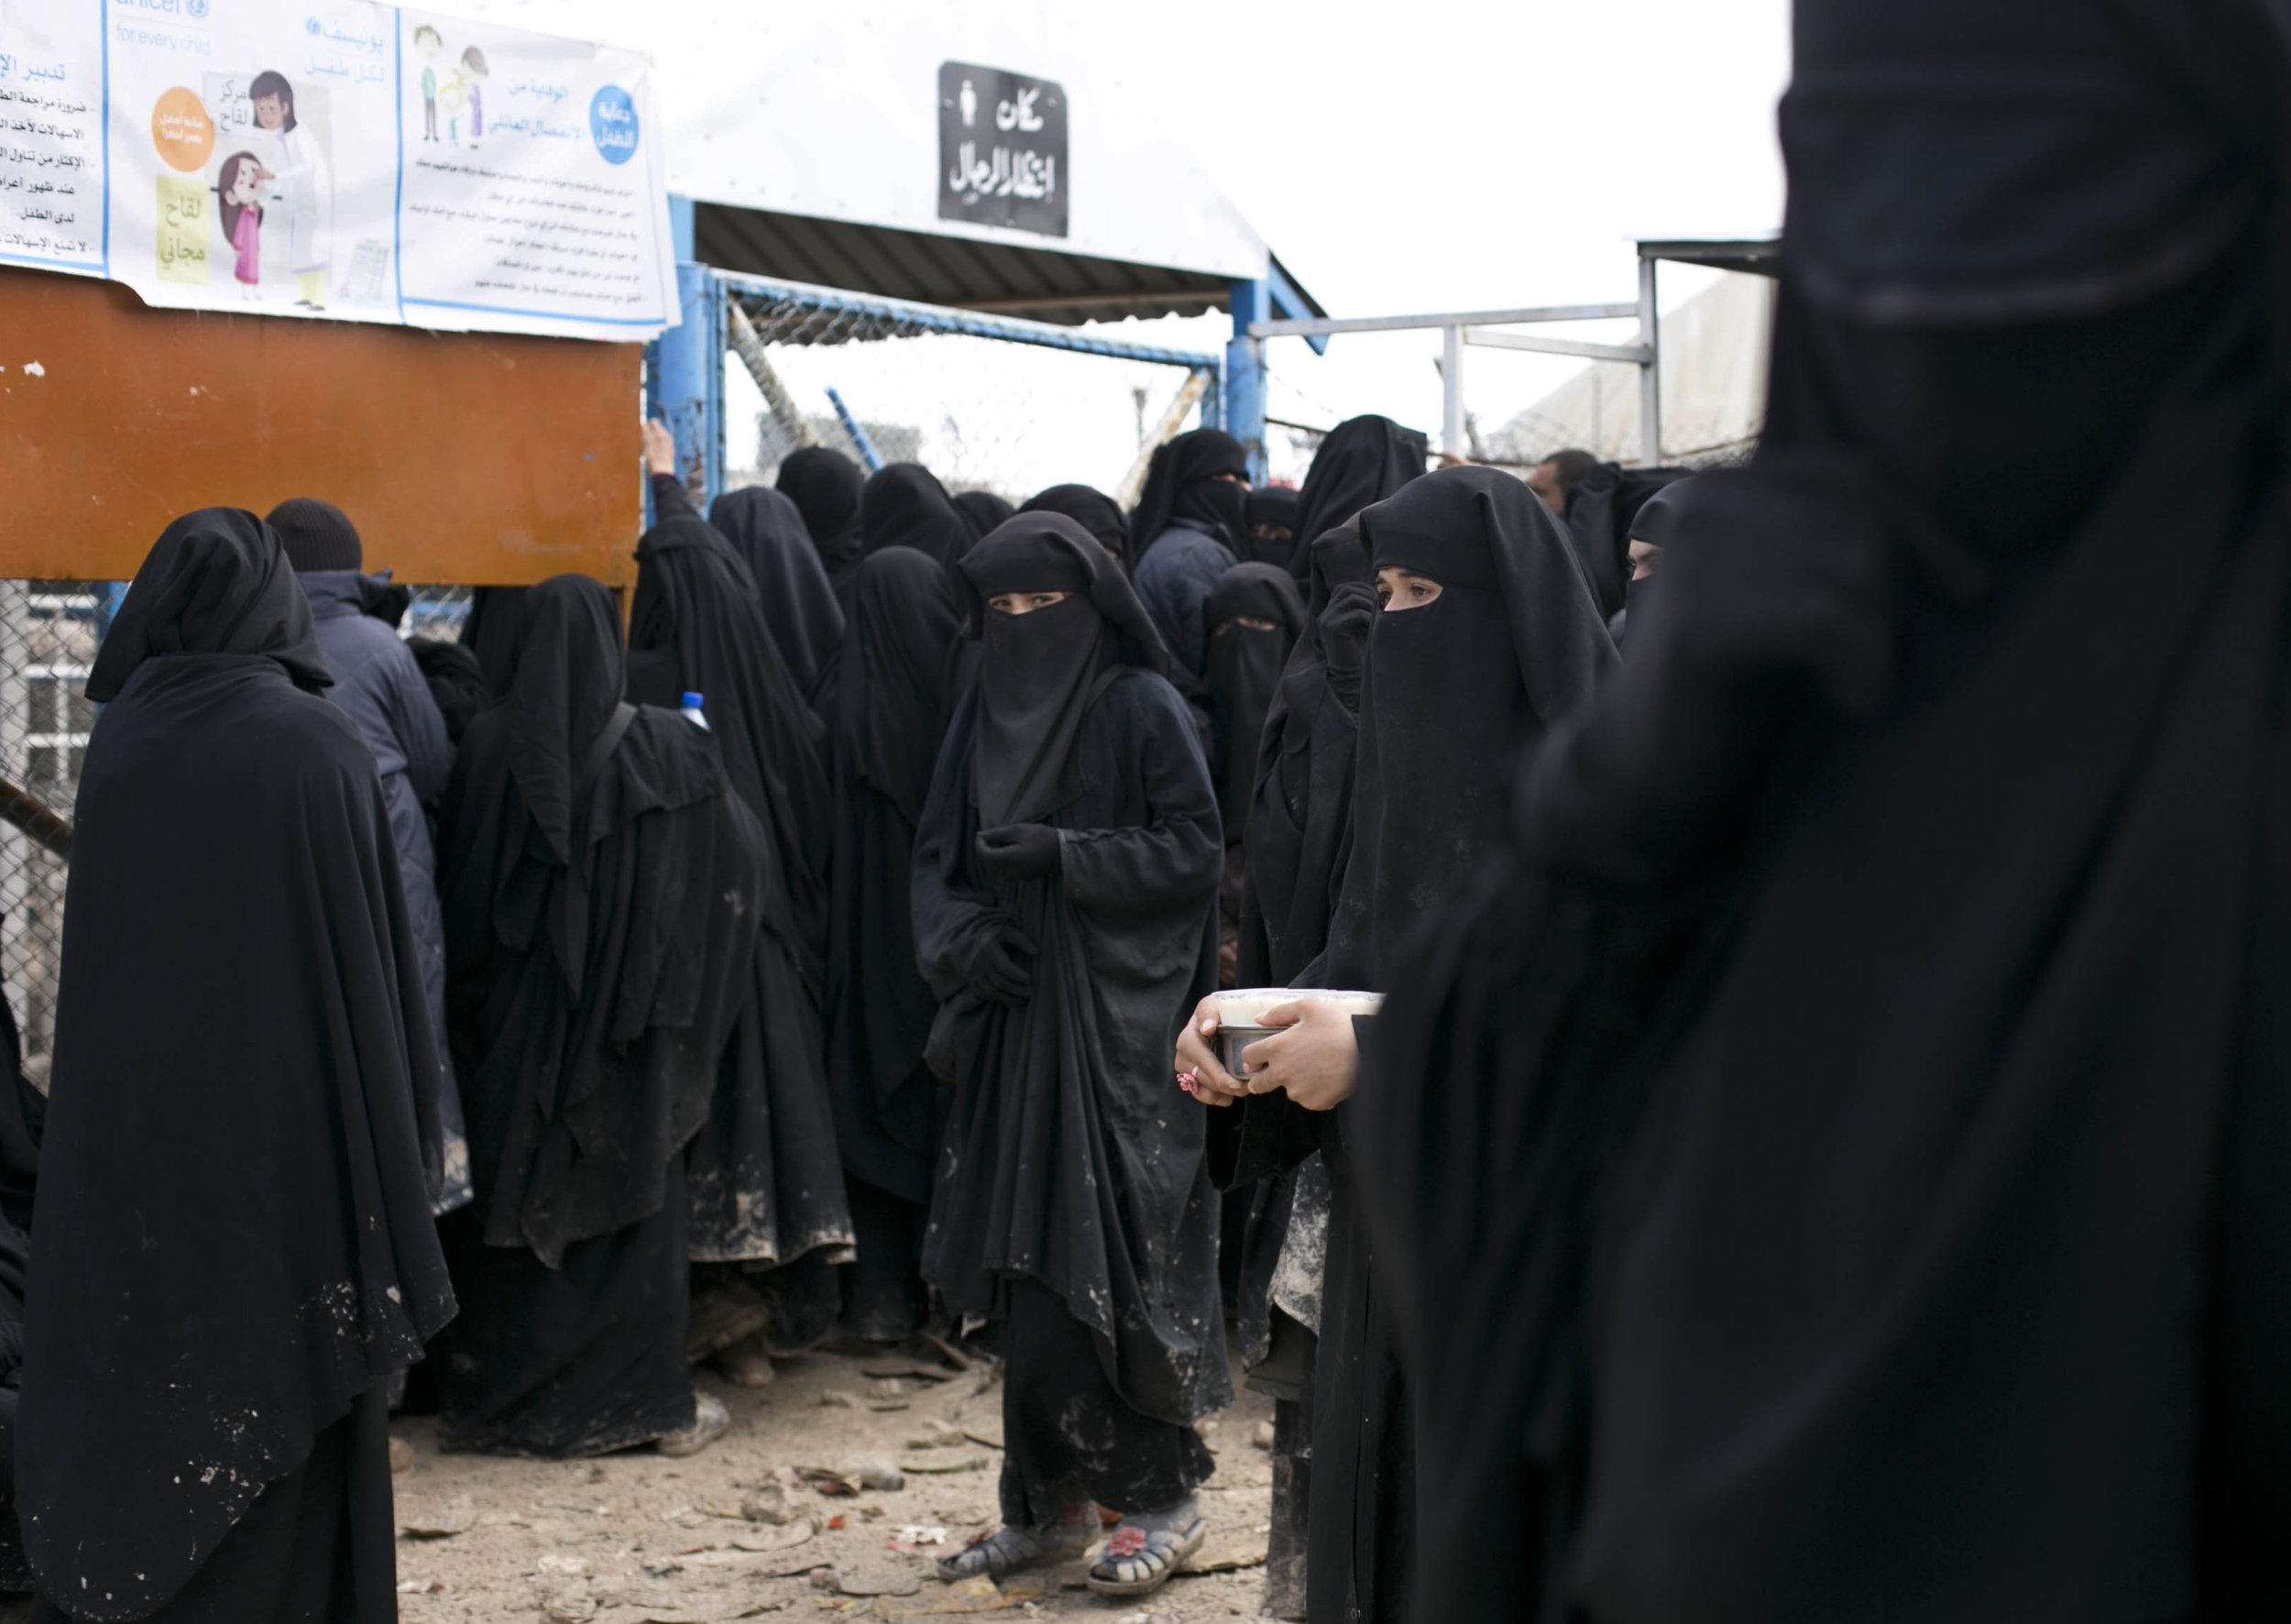 Women line up for air supplies at al-Hol camp in Hassakeh province, Syria on March 31, 2019. The camp is past full capacity, with more than 73,000 residents from Islamic State-held areas in Syria. (AP Photo/Maya Alleruzzo)